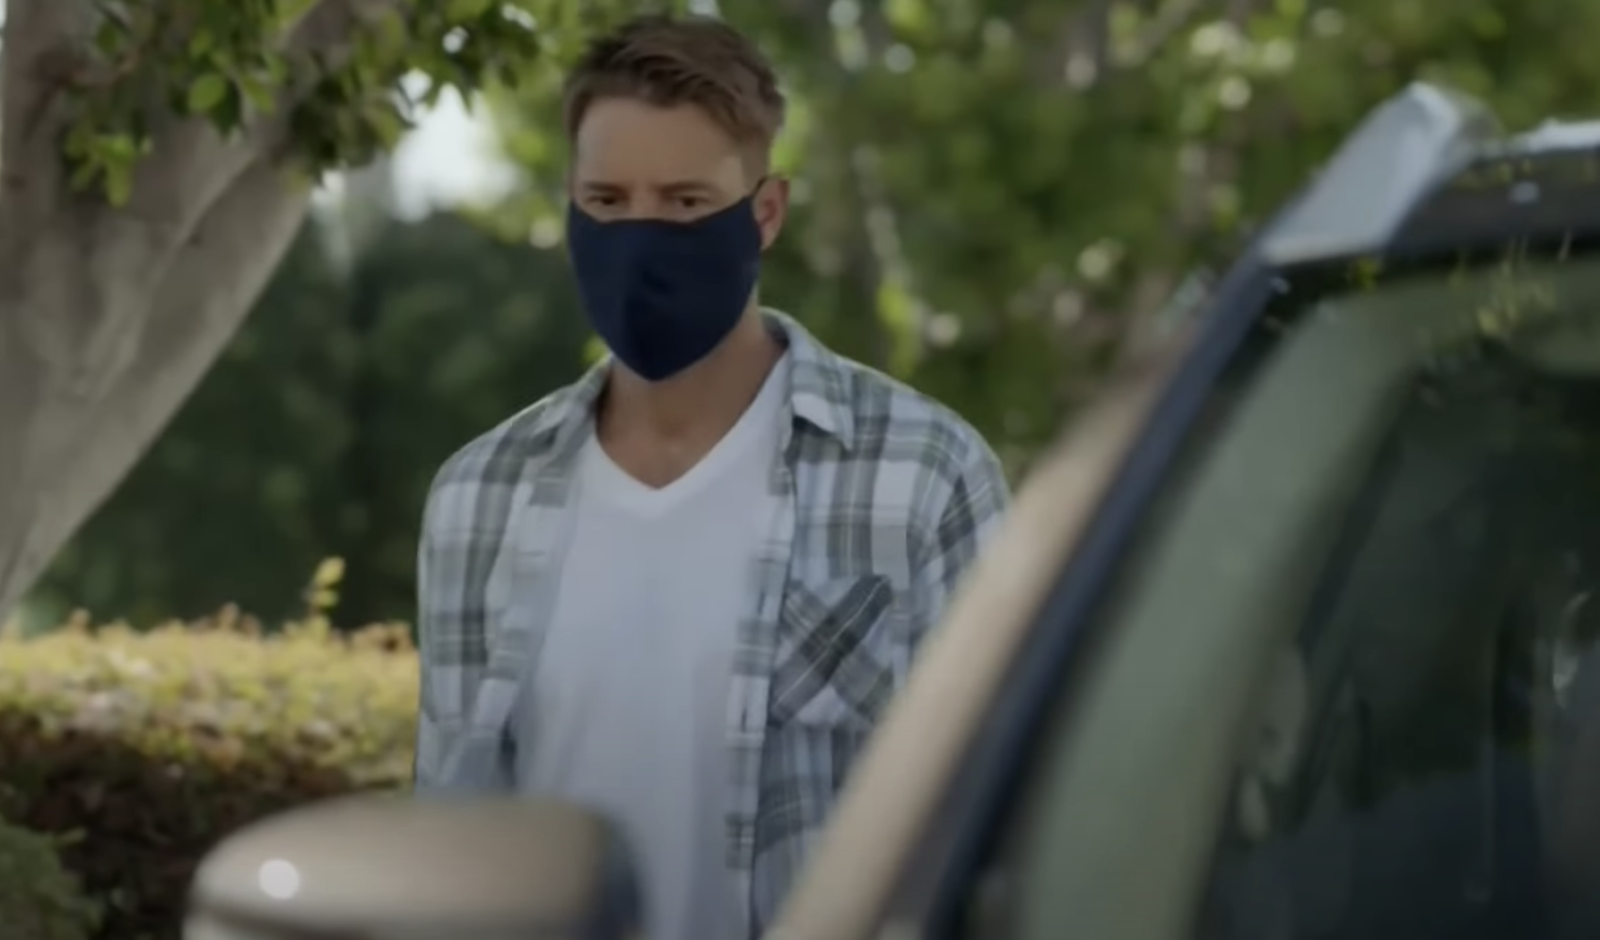 This Is Us' Season 5 Trailer Teases New Beginnings, Kevin & Randall's  Fallout, Kevin's Fiancee, and Face Masks - CraveYouTV TV Show Recaps,  Reviews, Spoilers, Interviews